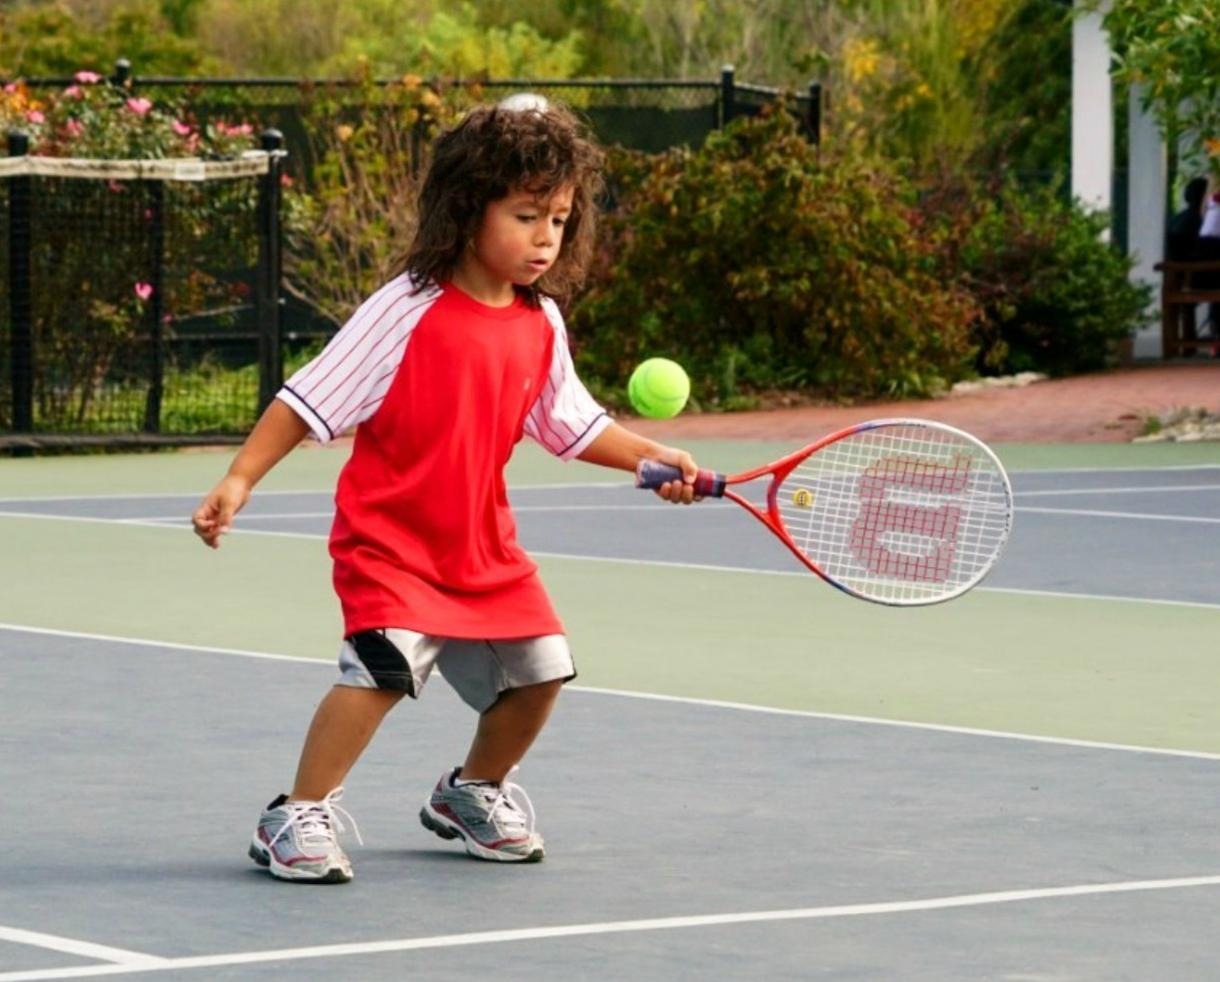 Half-Day JTCC Tennis Camp at College Park Tennis Club